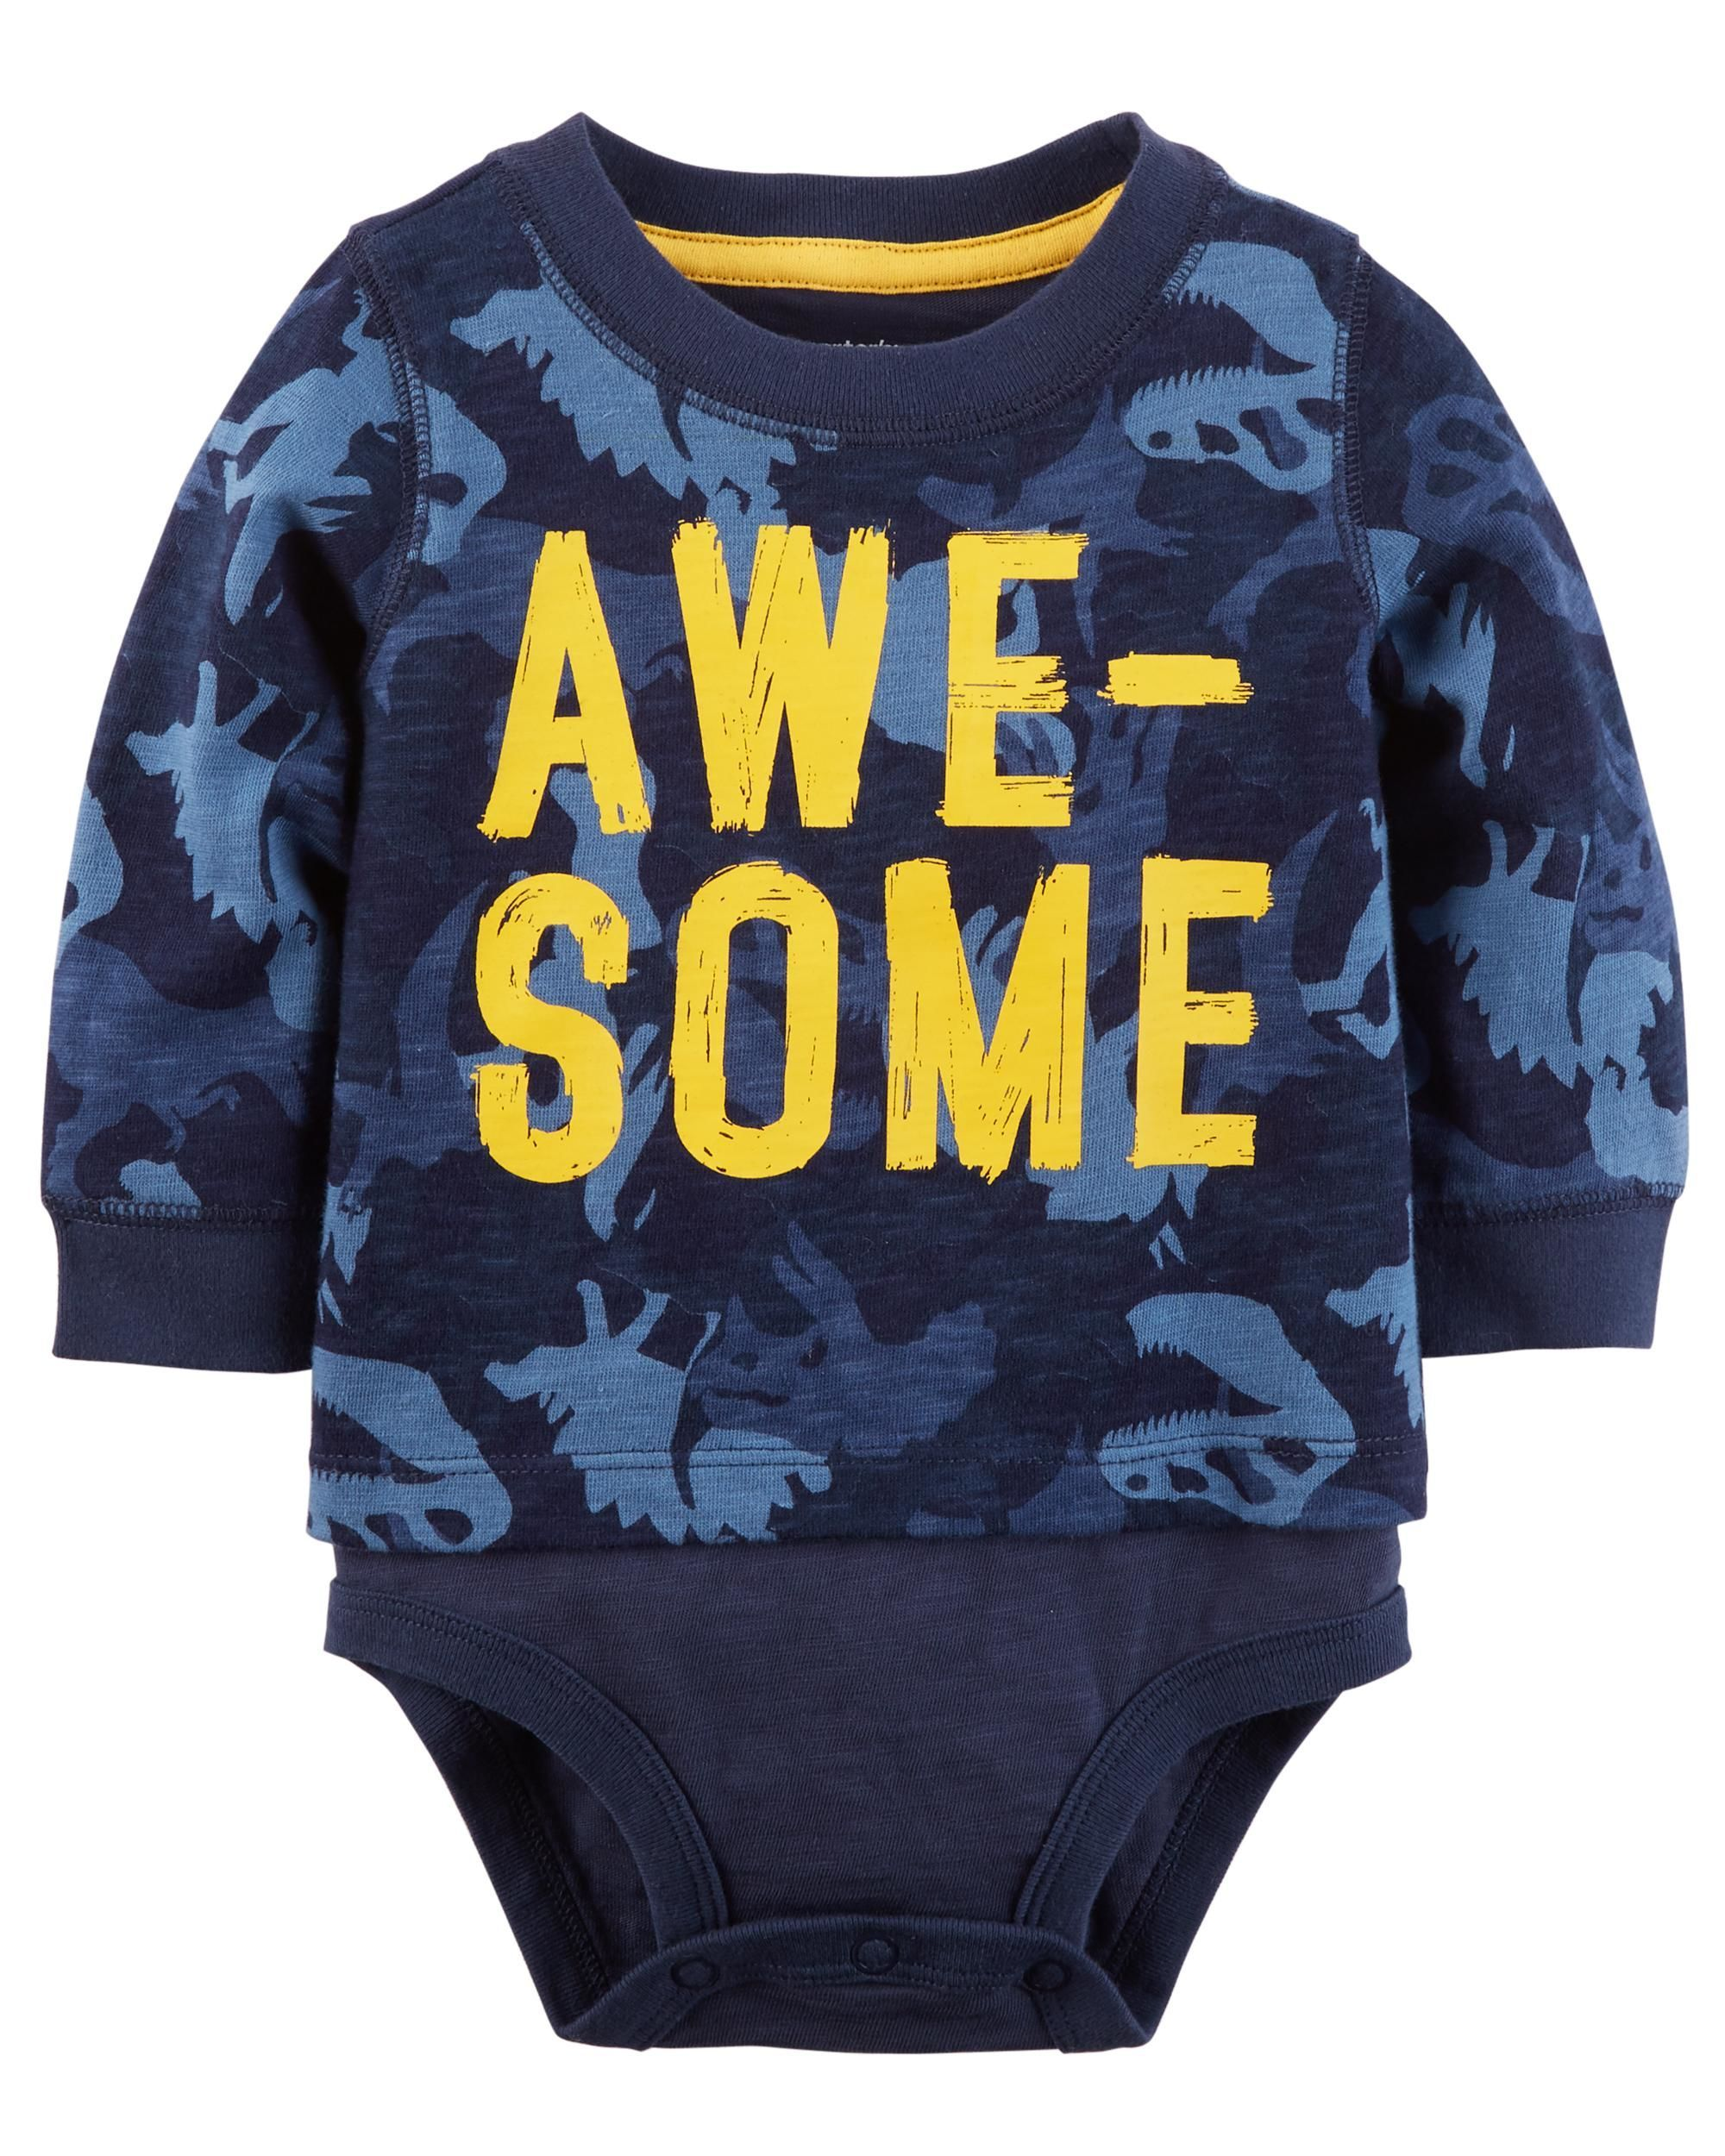 f072aa918 Awesome Double-Decker Bodysuit | BABY&KIDS | Carters baby boys ...